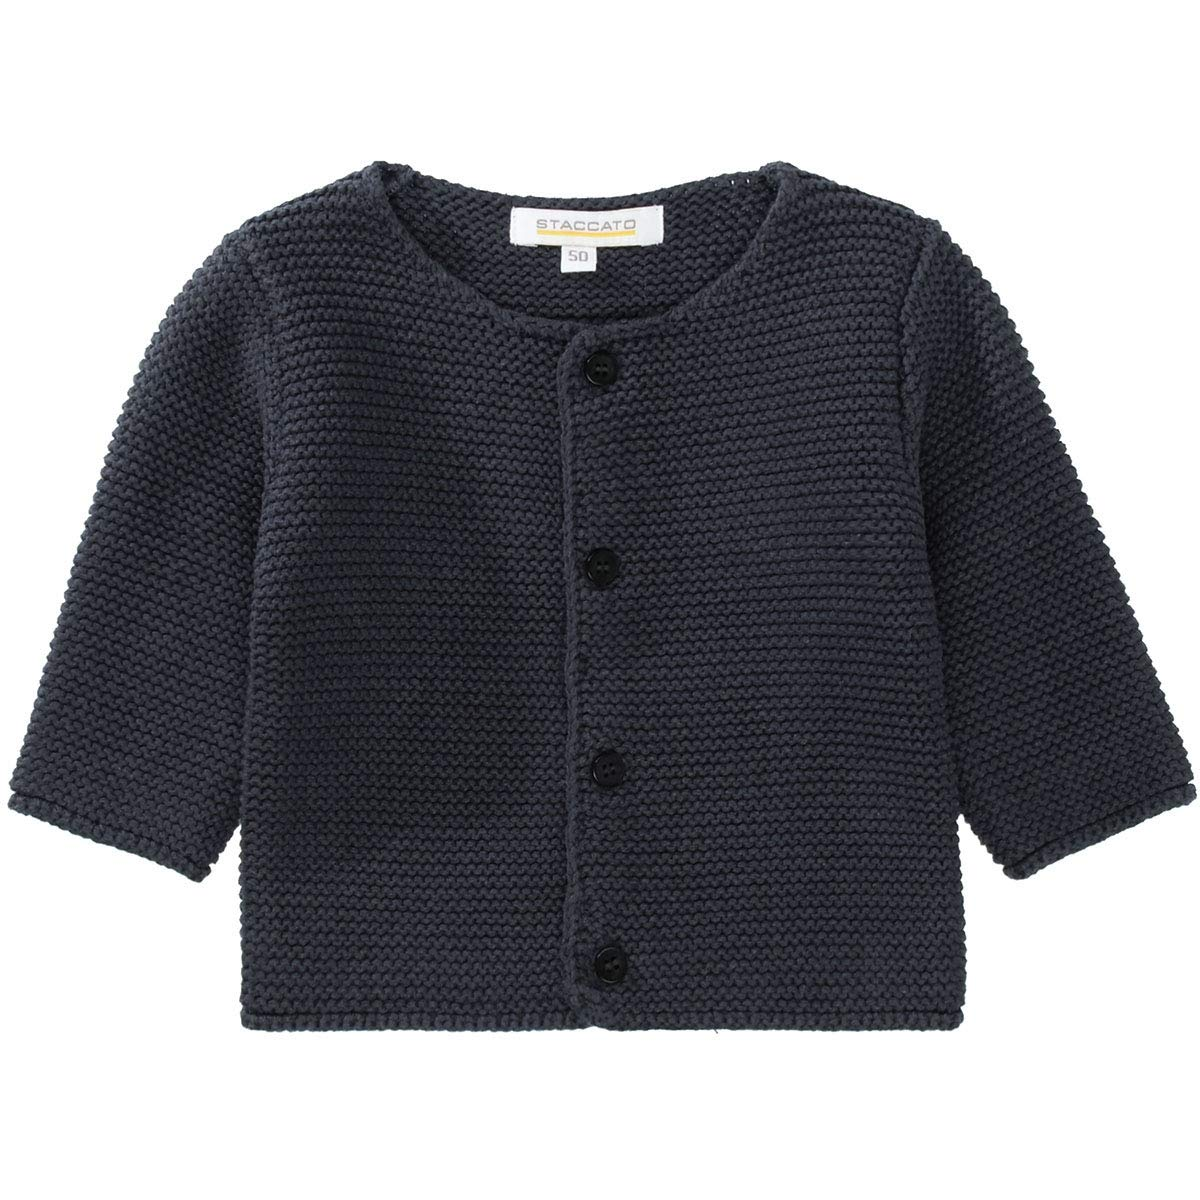 230072727 Staccato Jungen Grobstrickjacke Soft Midnight